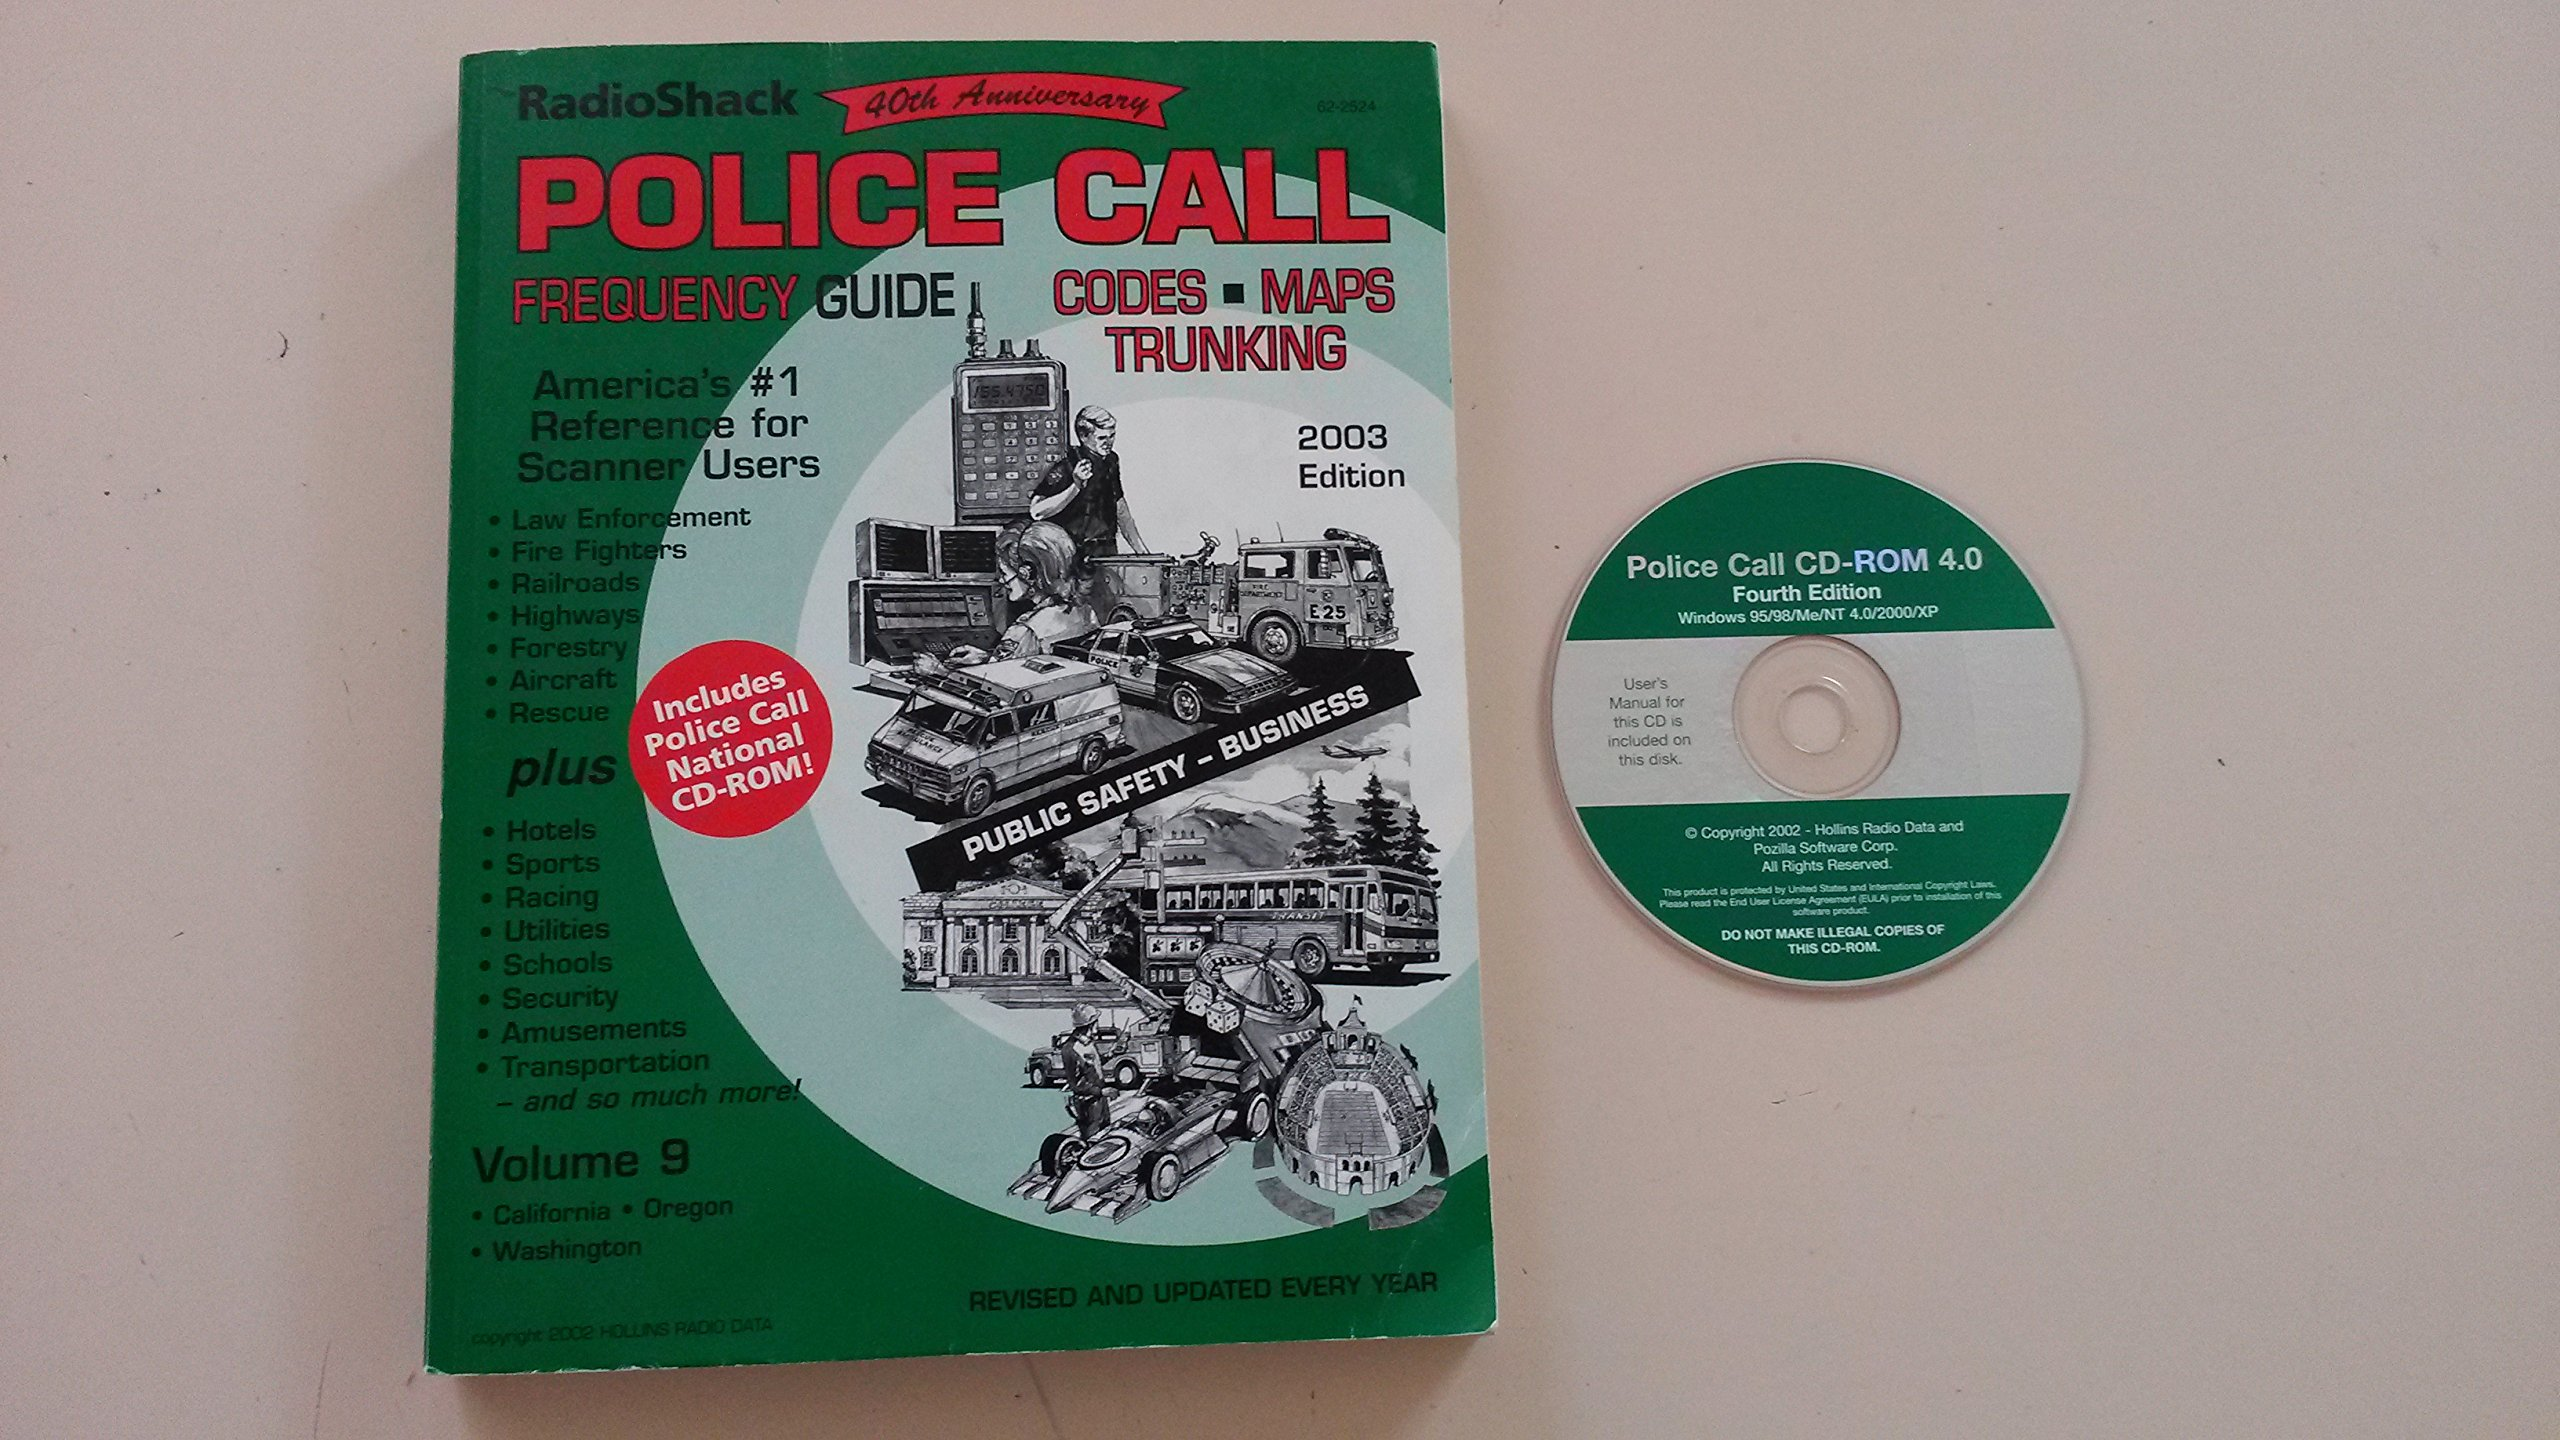 RadioShack Police Call Frequency Guide (America's #1 Reference for